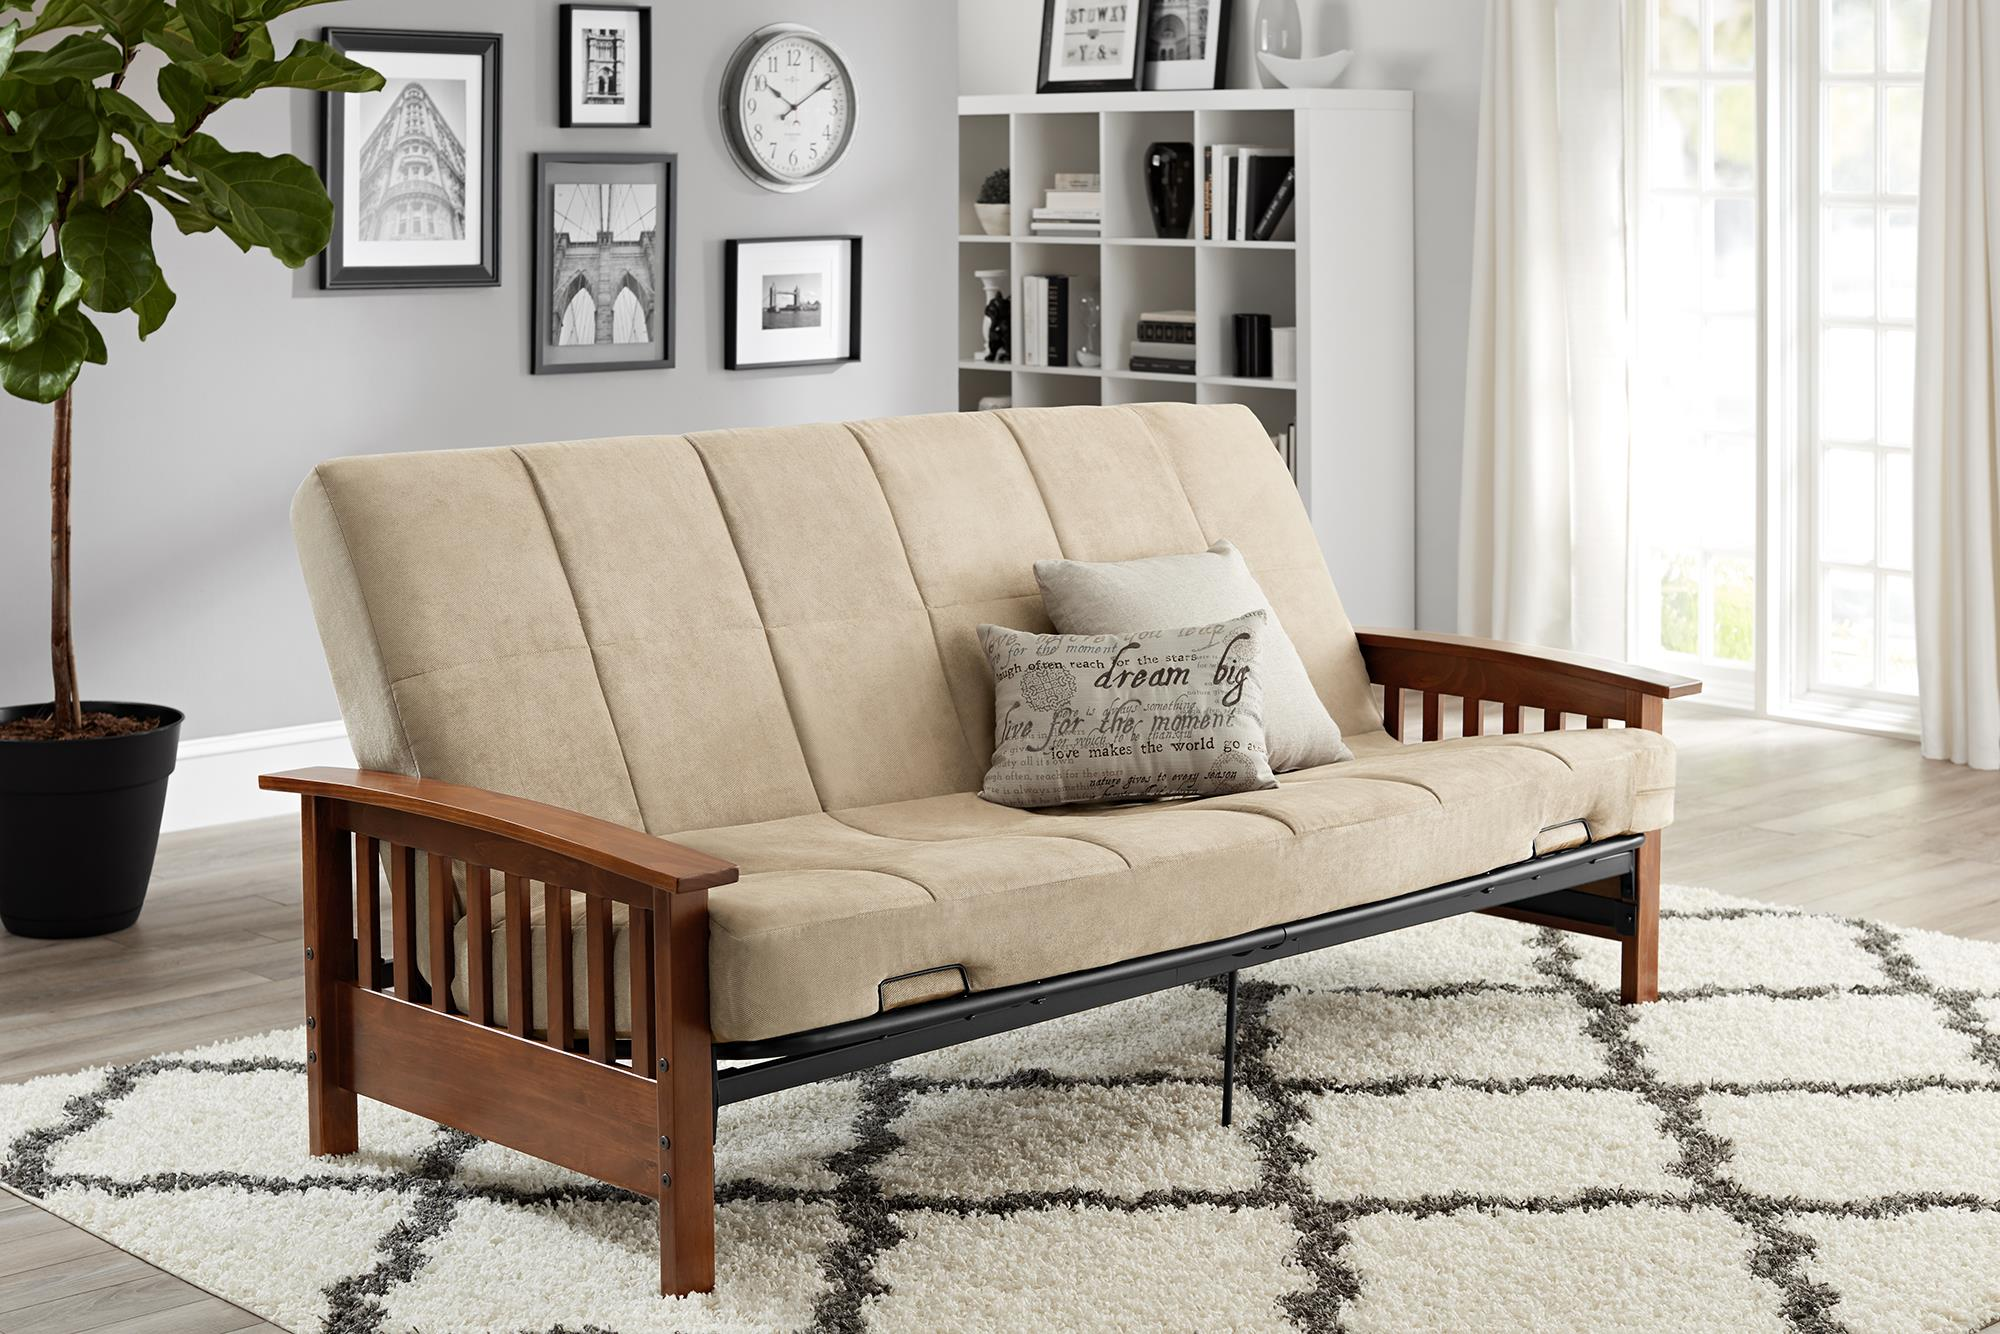 Convertible Small Single Sleeper Mission Wood Arm Futon Full Couch ...